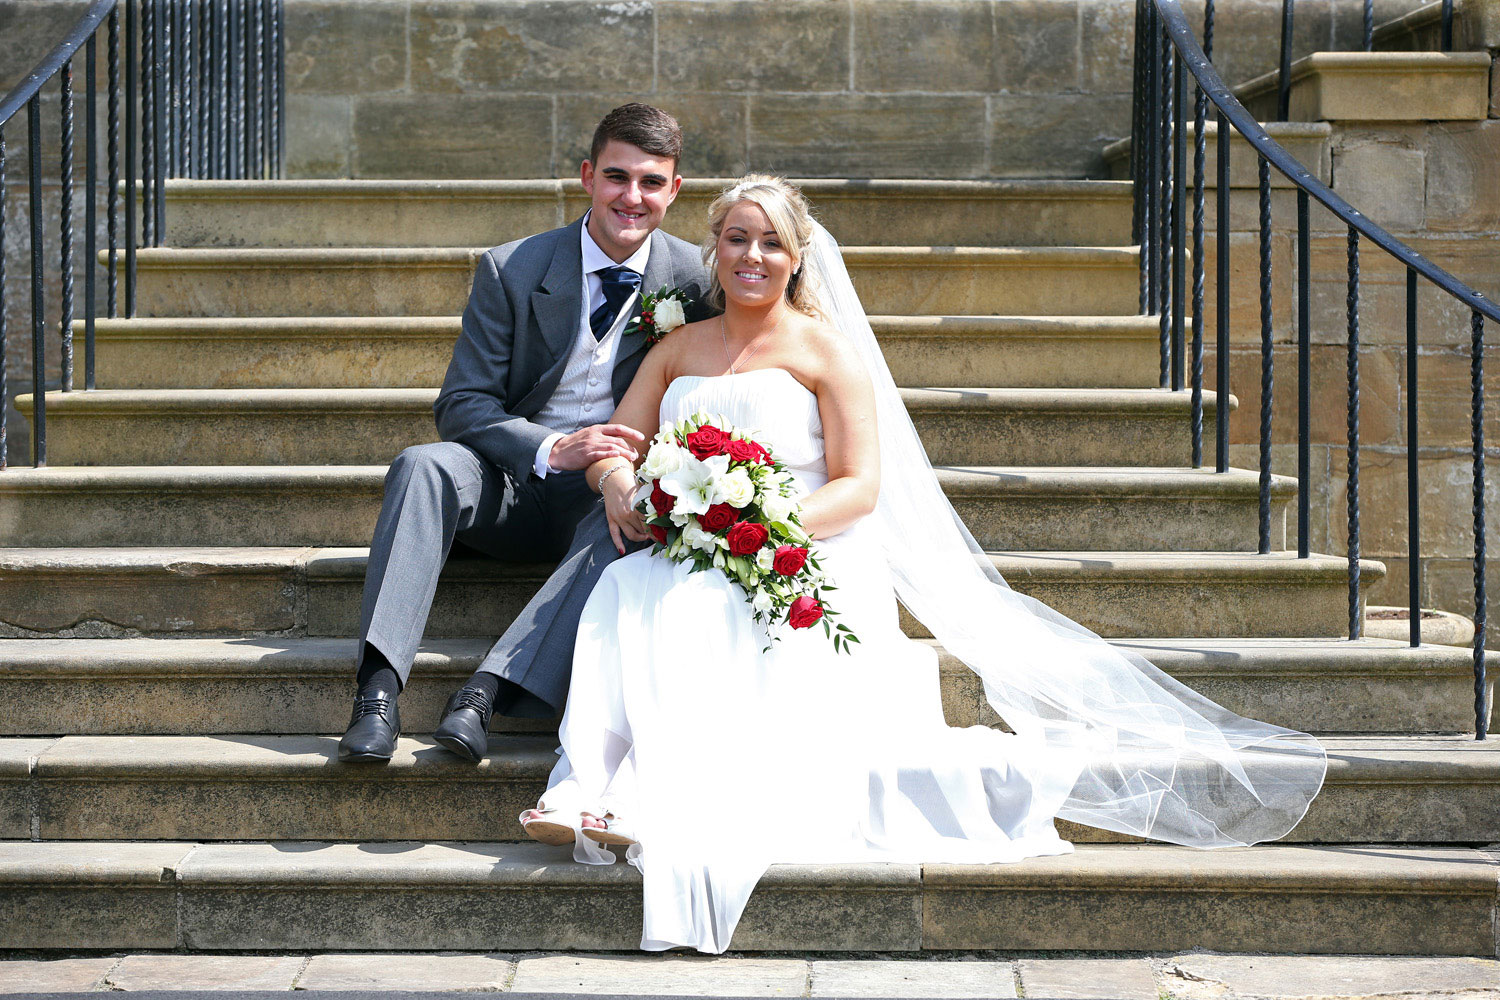 Jamie and Stacey-Lee's Wedding